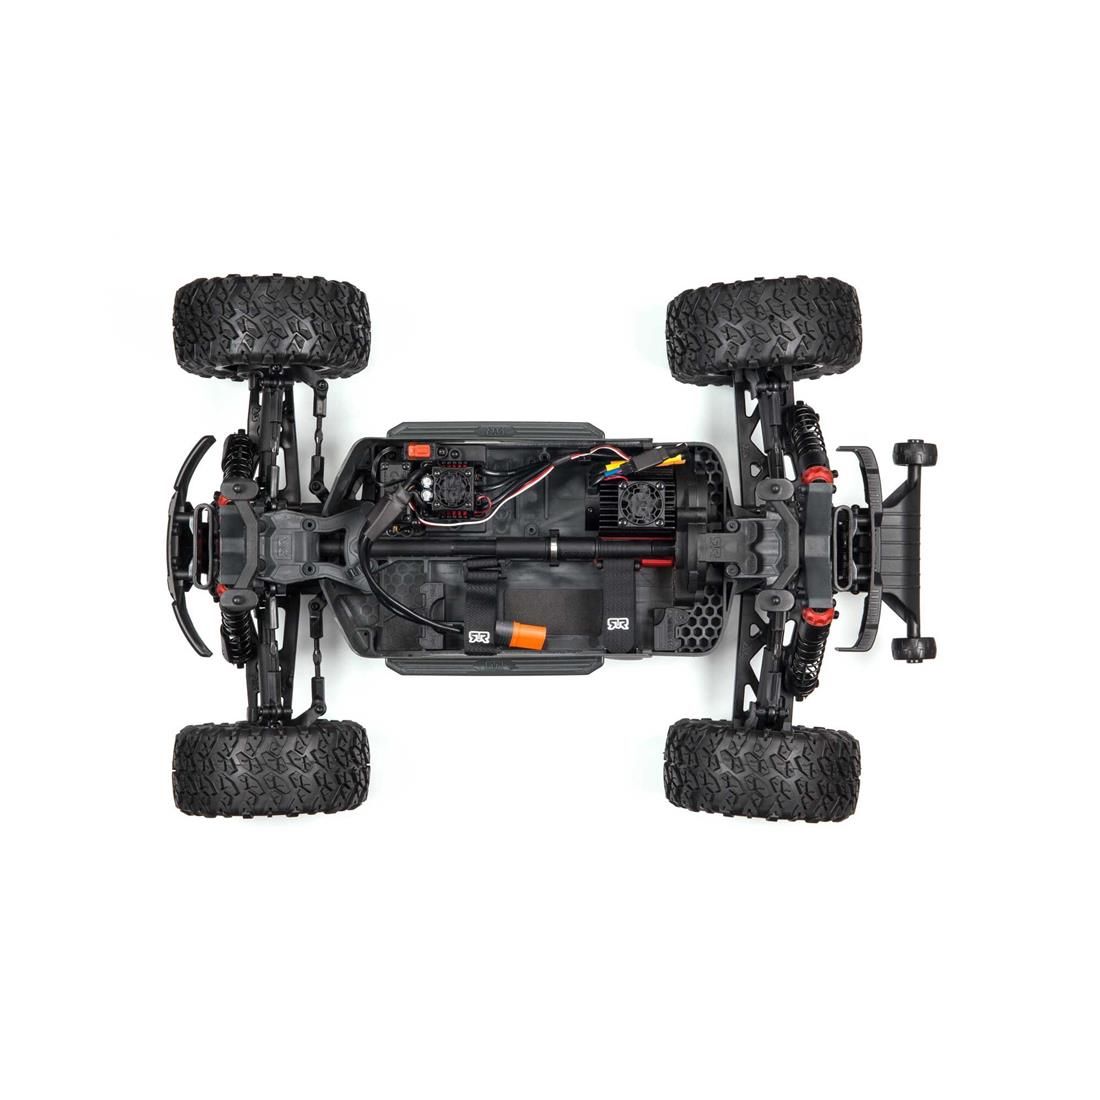 ARRMA Big Rock 4x4 V3 3s BL - RTR Black